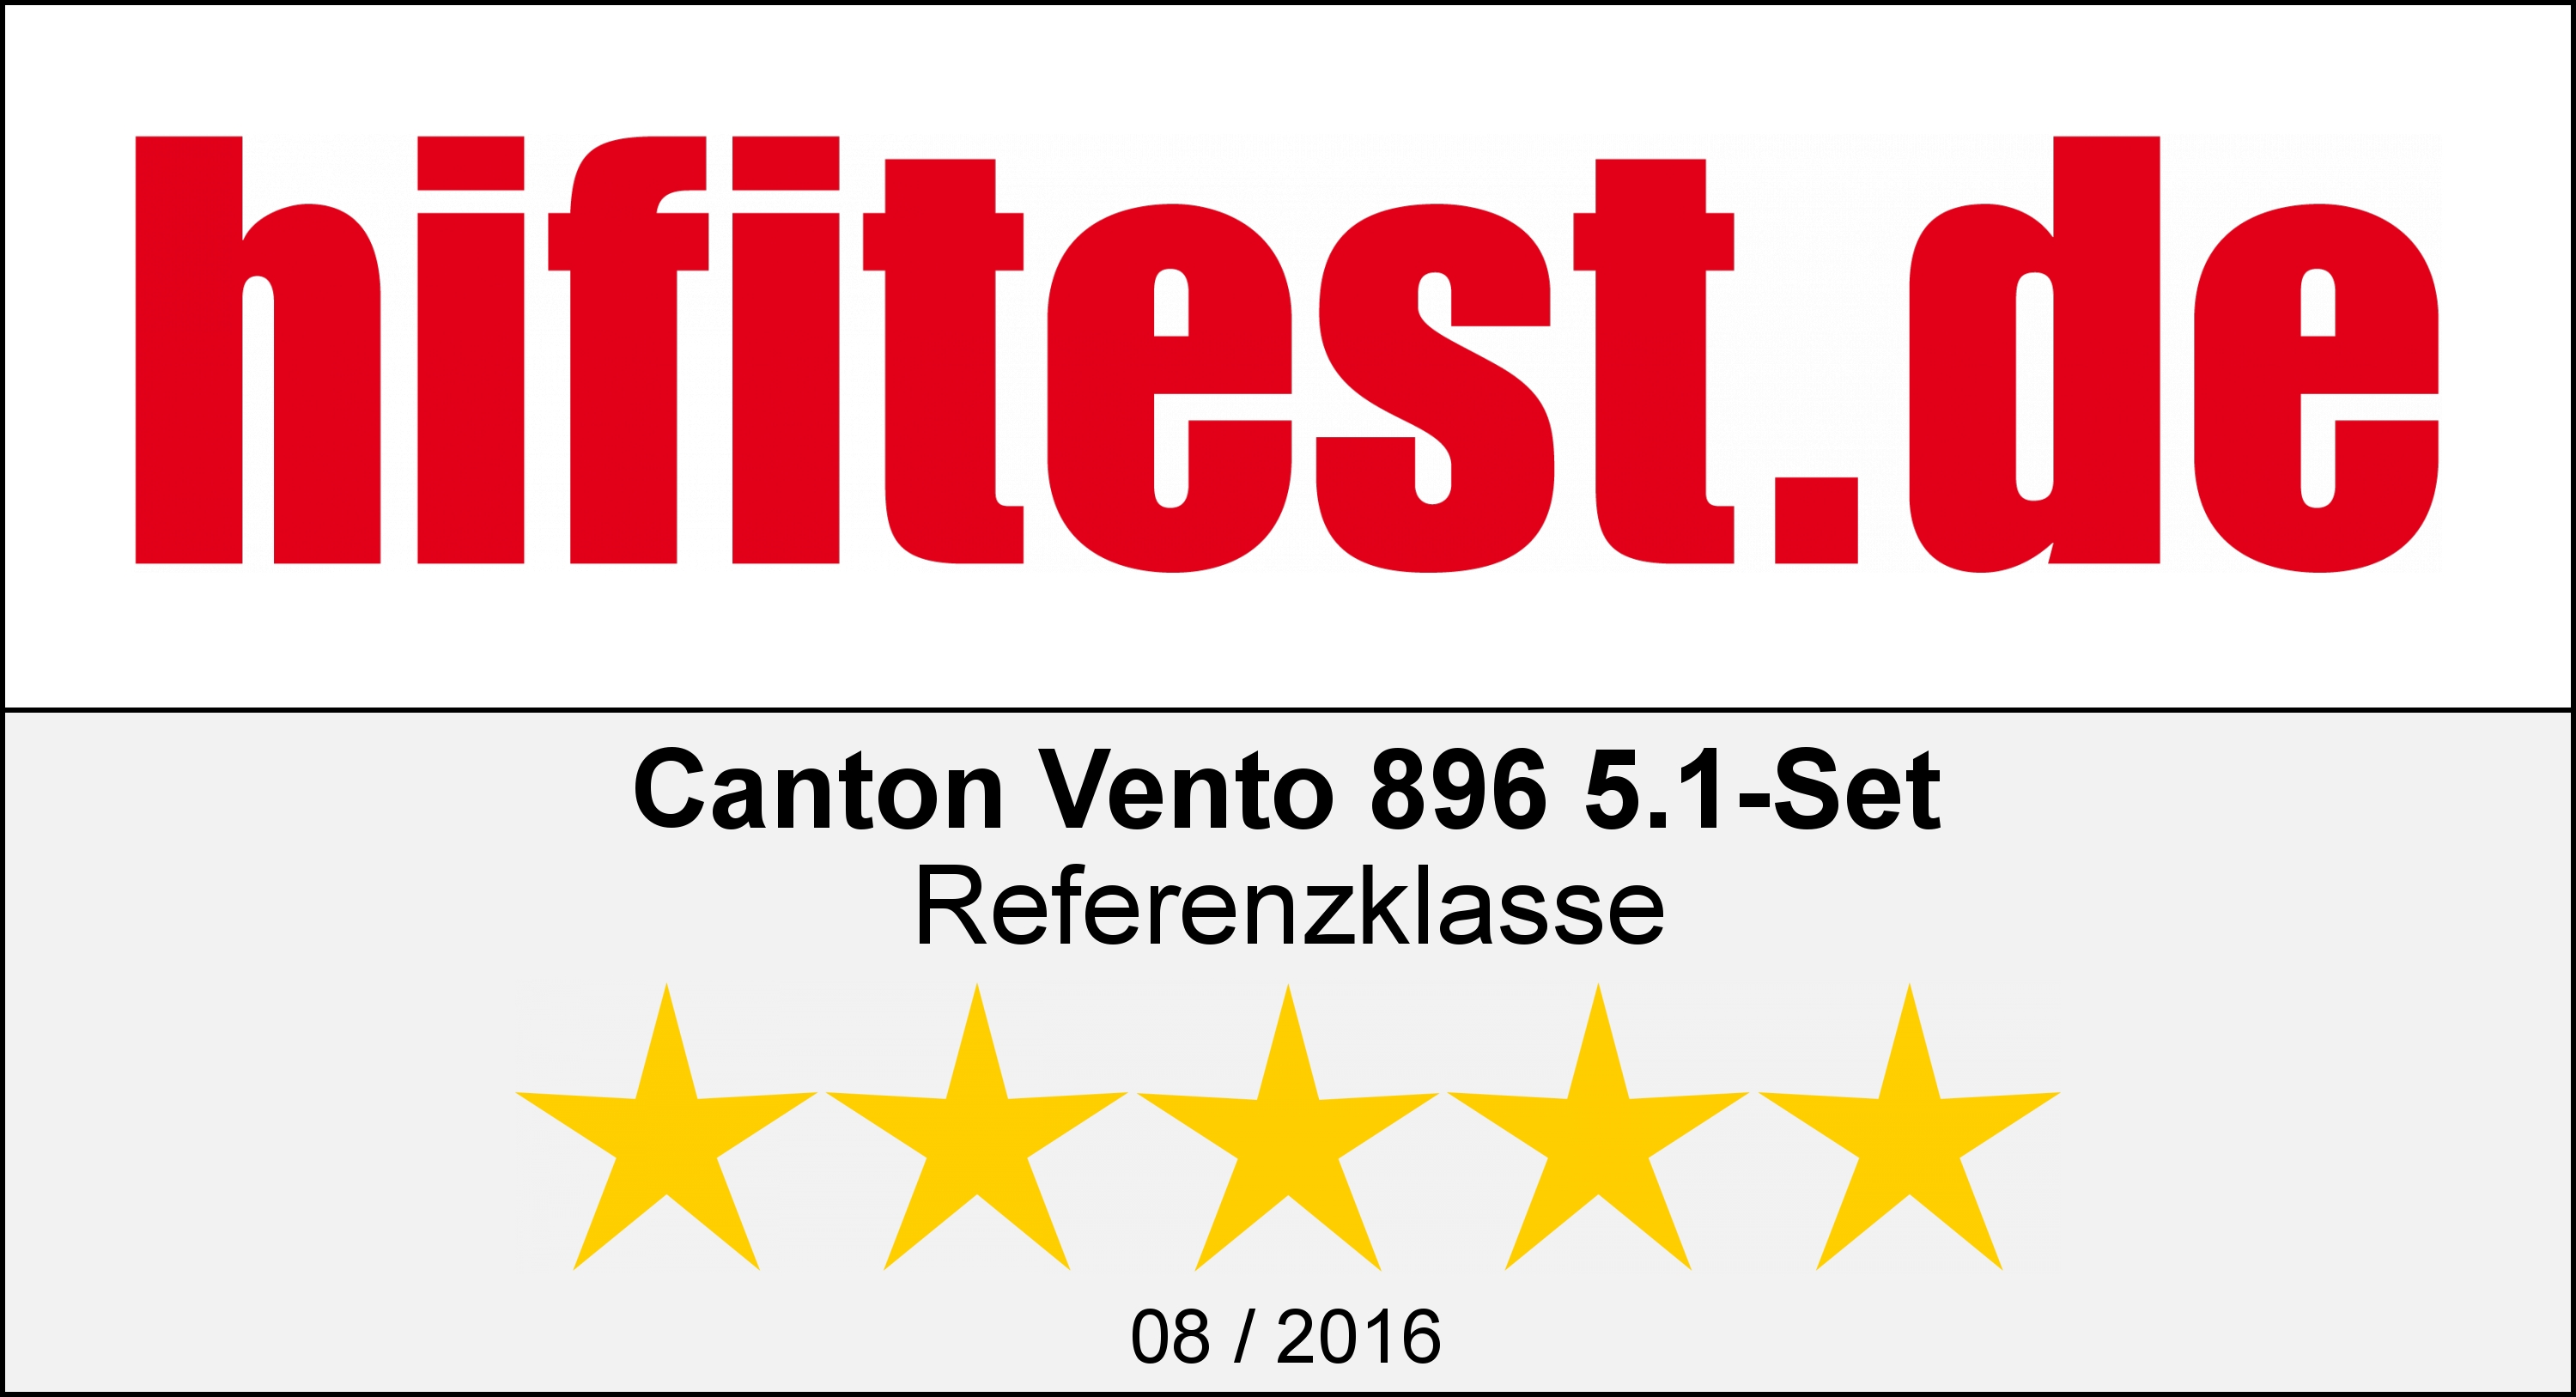 Vento_Set_hifitest-de_Referenzklasse